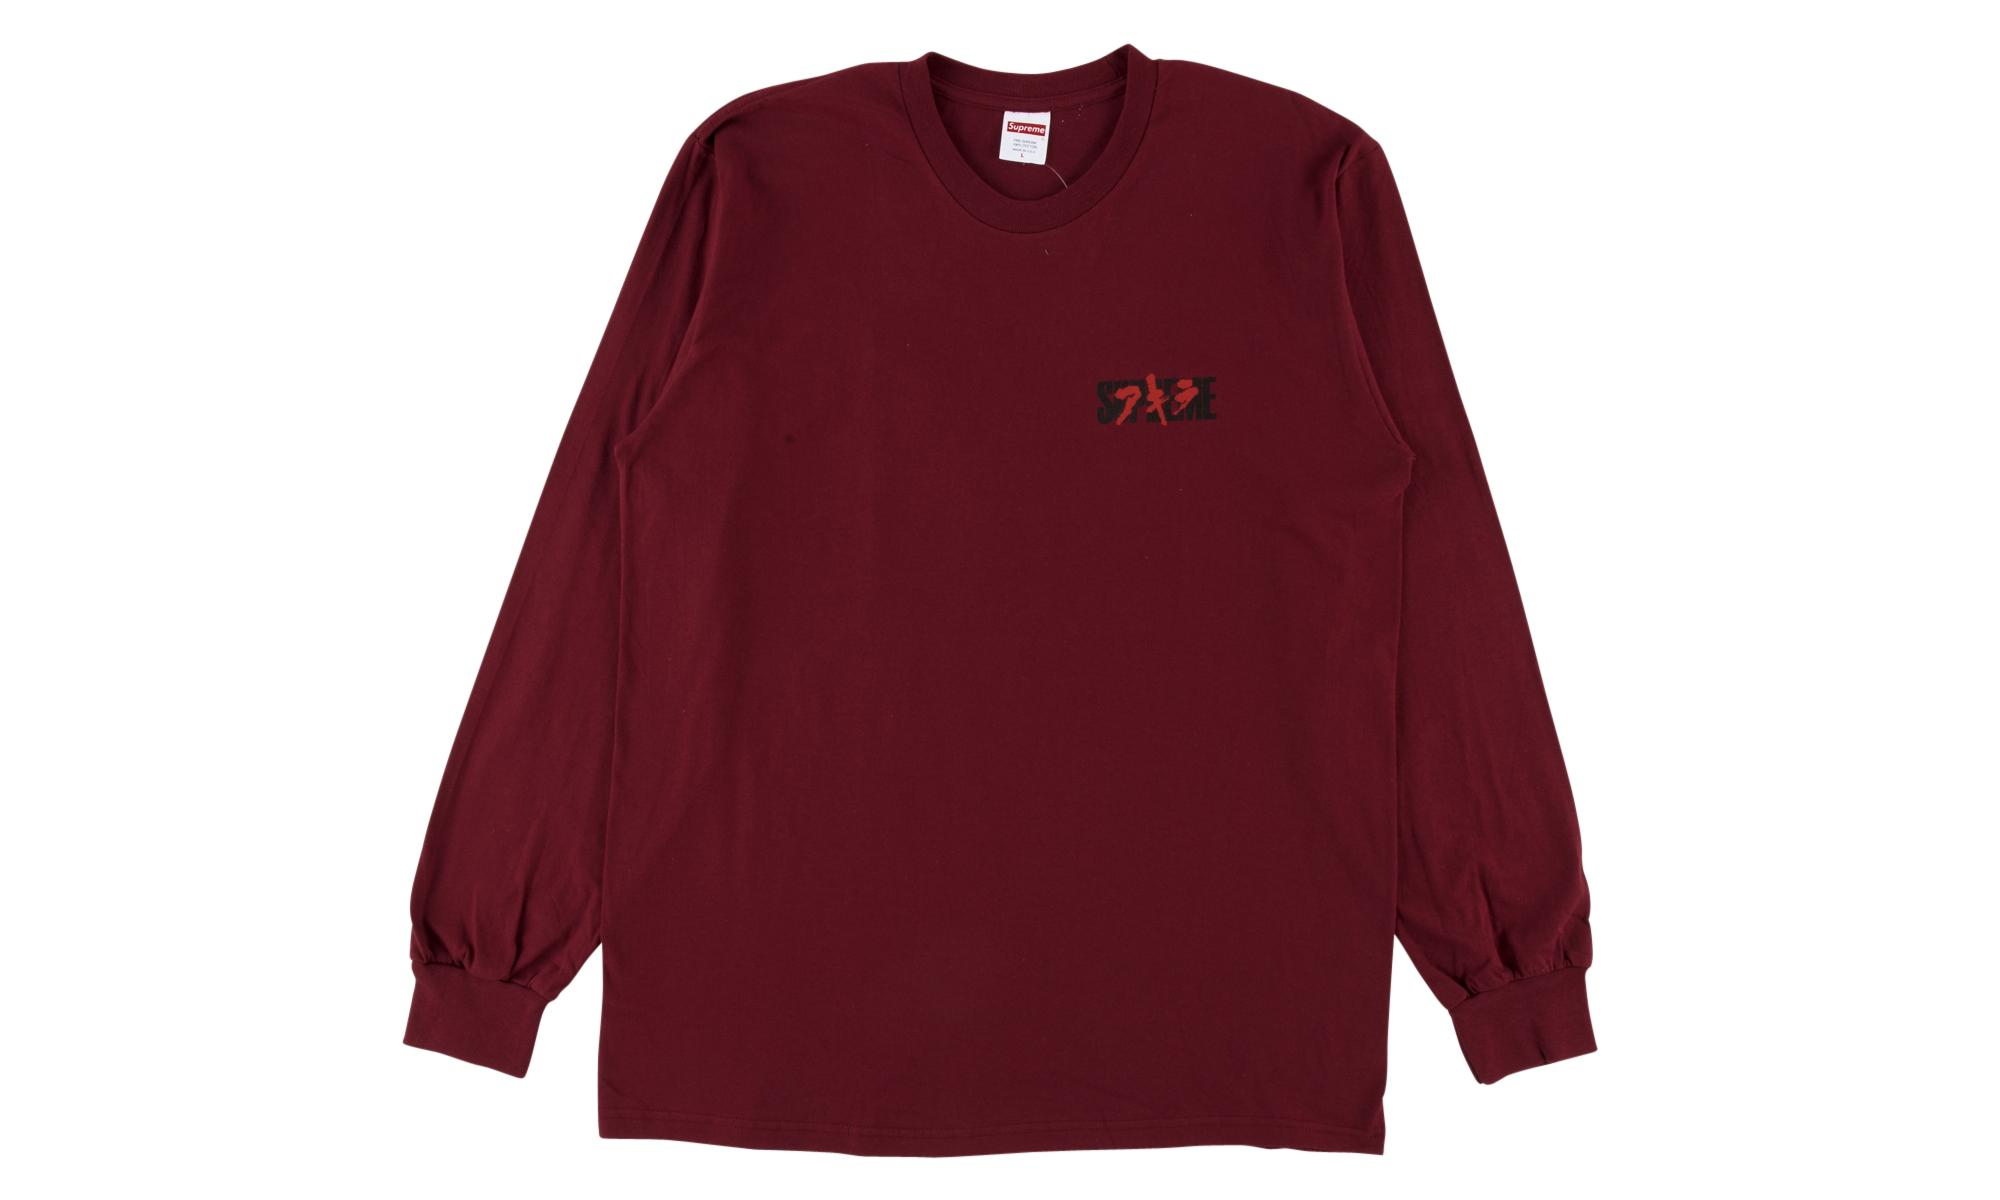 f78f79075448 Lyst - Supreme Akira Neo-tokyo L s Tee in Red for Men